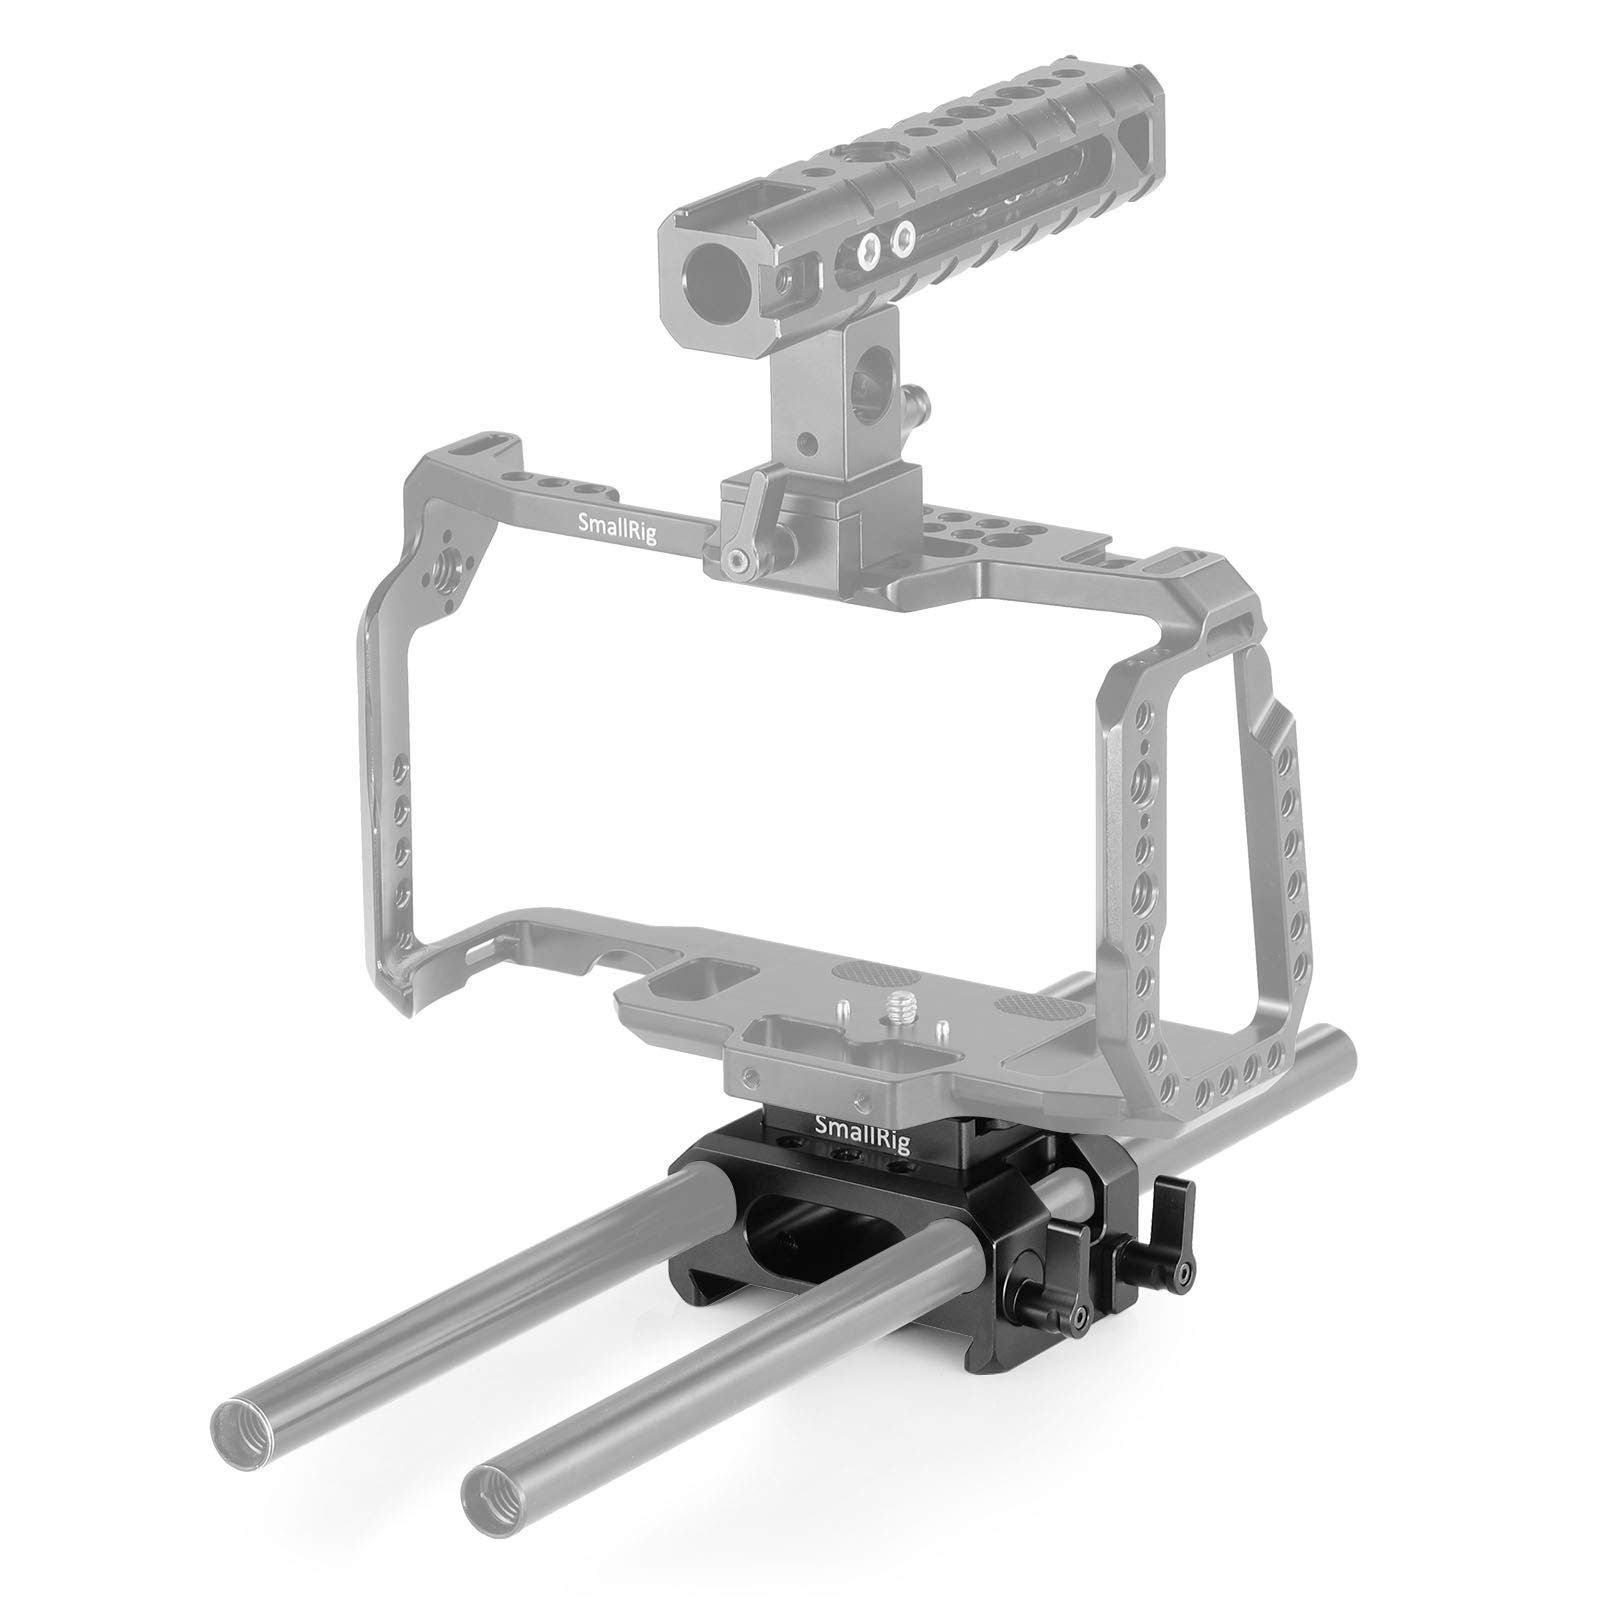 SMALLRIG 2261 Baseplate for Arca Swiss Standard Compatibl...